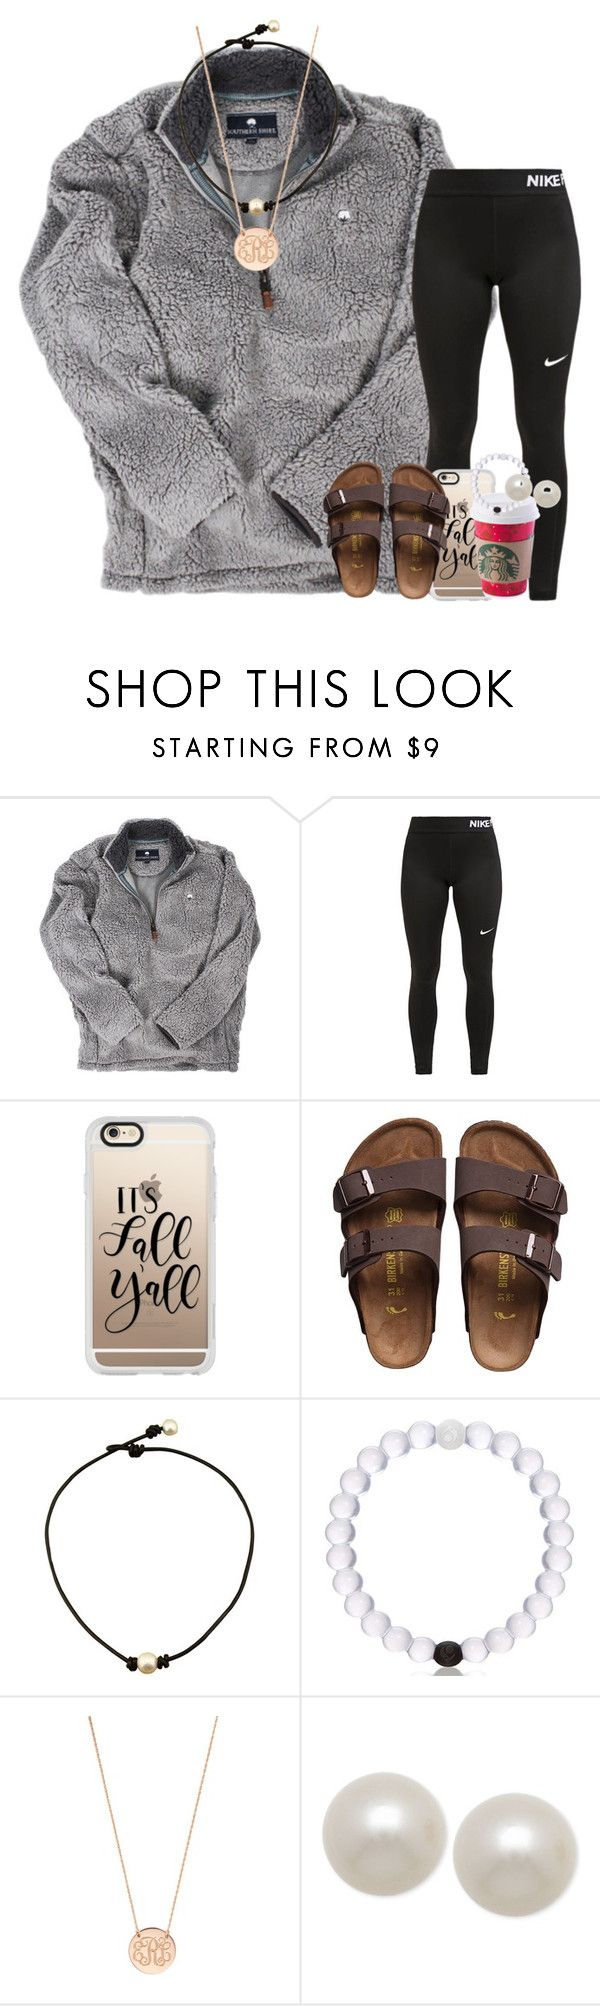 """relaxed set"" by ellaswiftie13 ❤ liked on Polyvore featuring NIKE, Casetify, Birkenstock, BaubleBar and Honora"